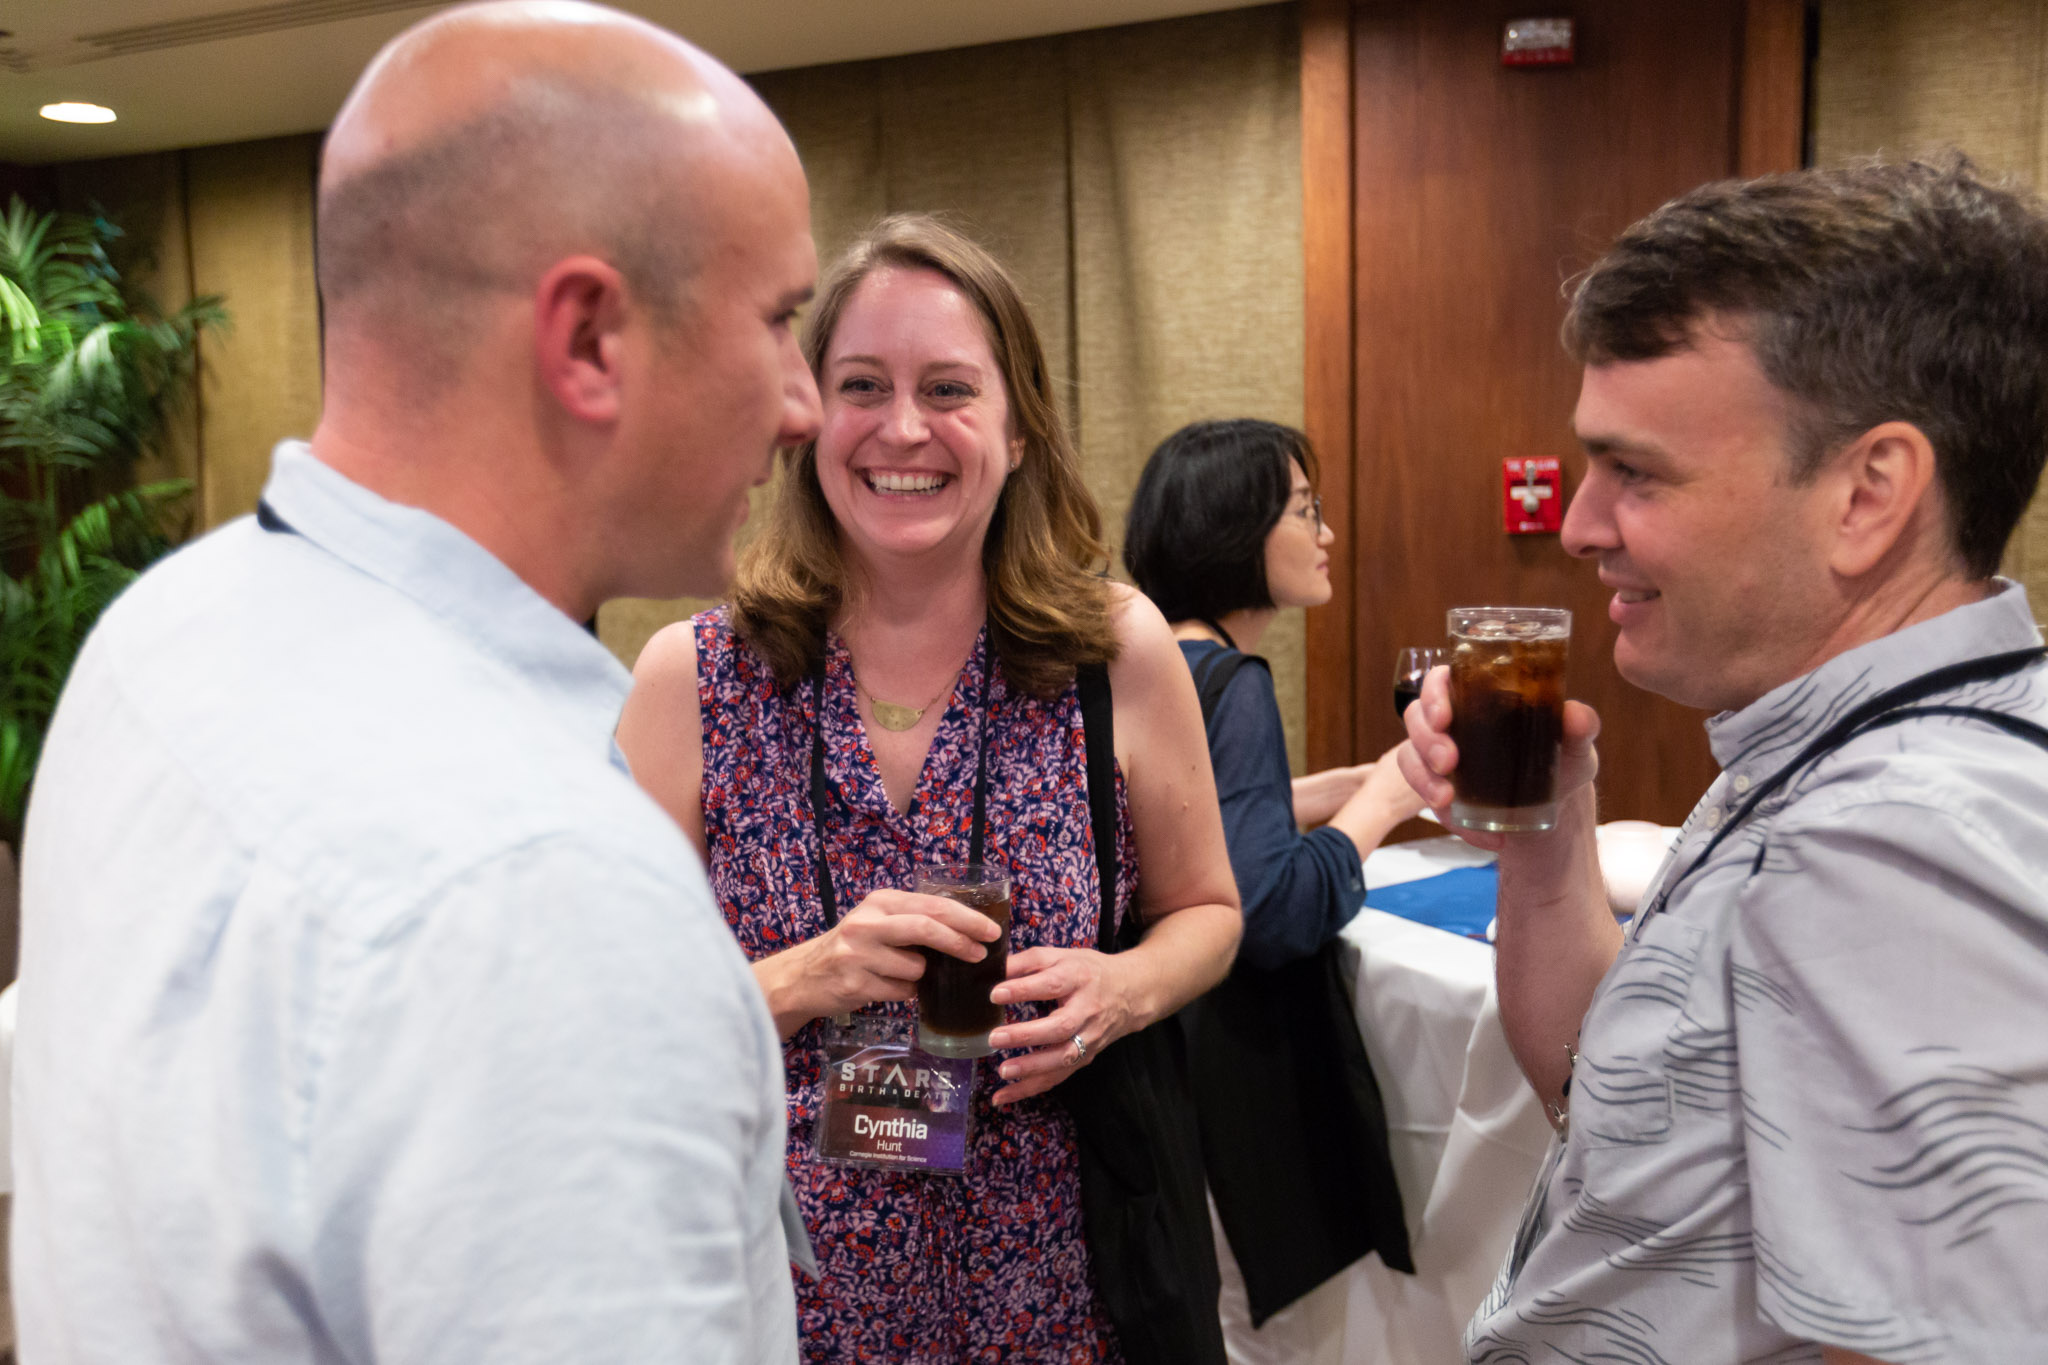 GMTCSM18-Welcome Reception-006.jpg